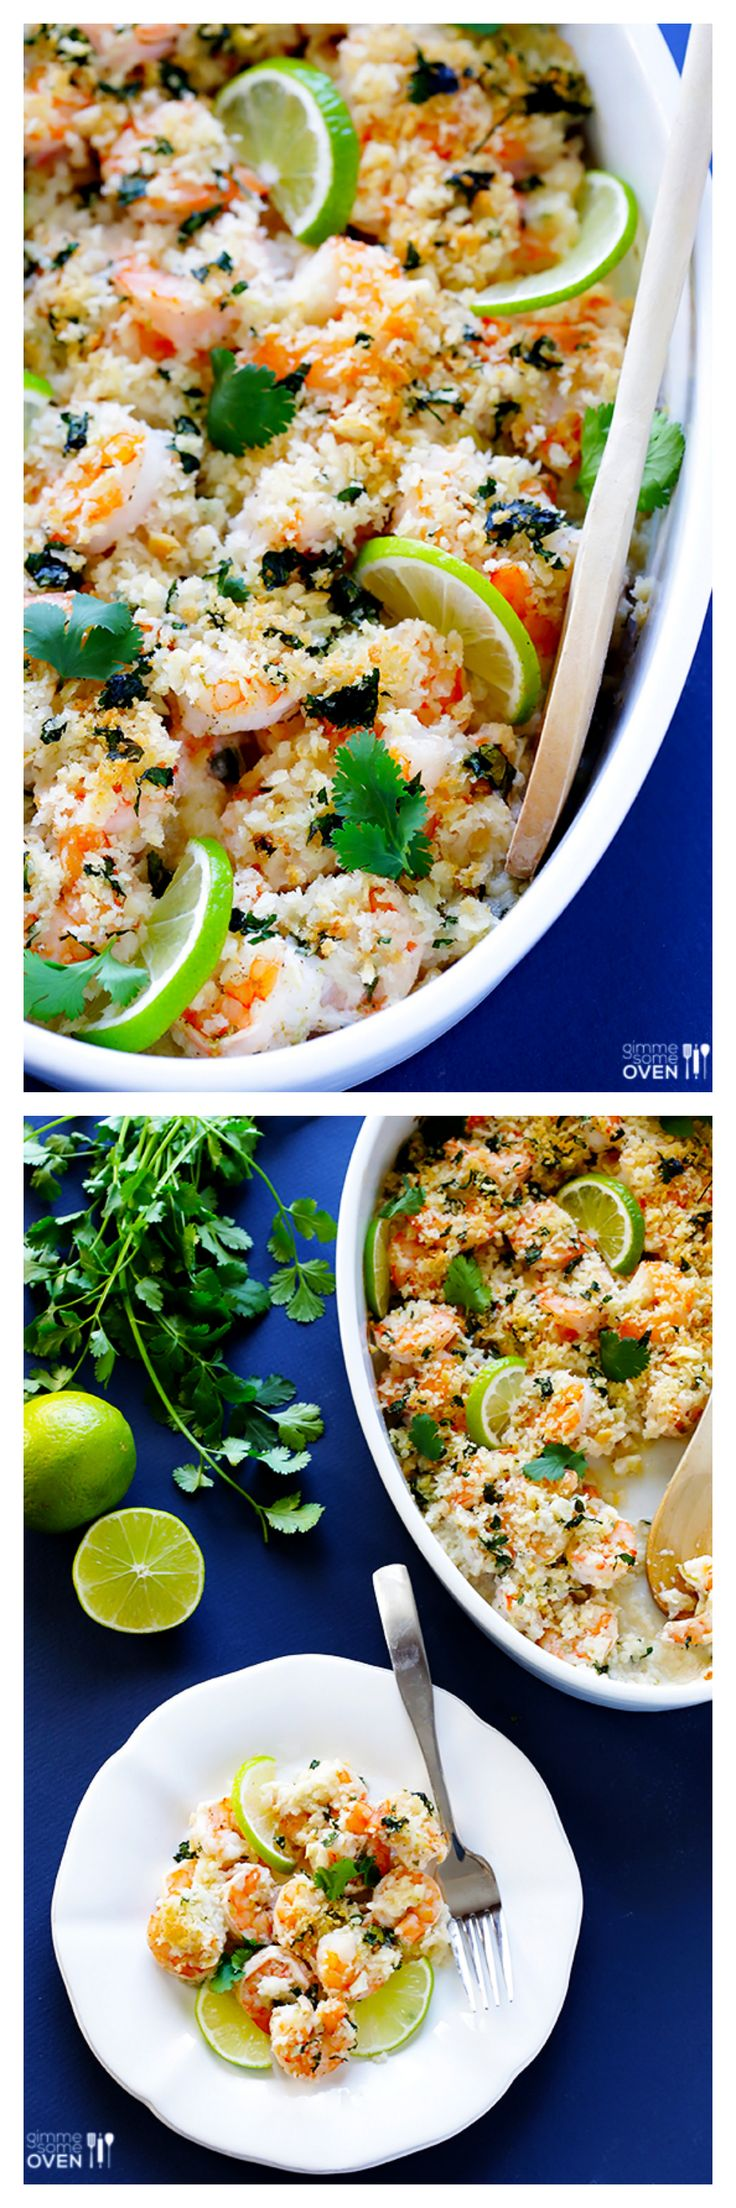 Cilantro Lime Baked Shrimp -- easy, healthier, delicious, and ready to go in 30 minutes! gimmesomeoven.com #shrimp #recipe